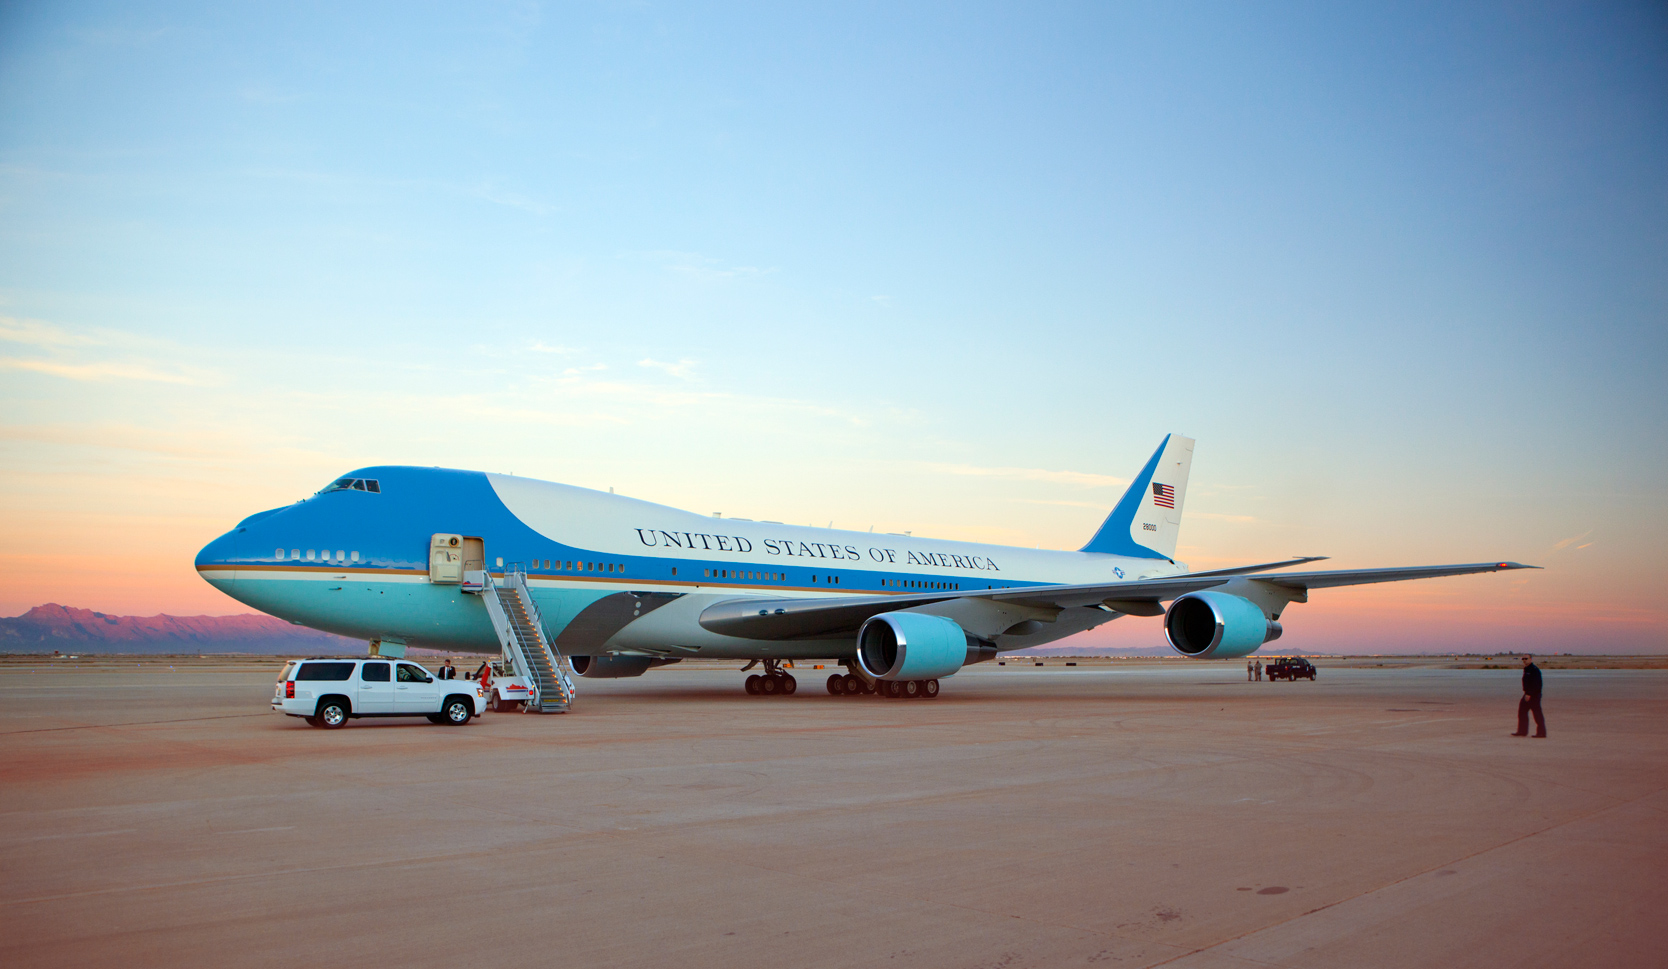 For Presidents Day: Fun Facts about Air Force One